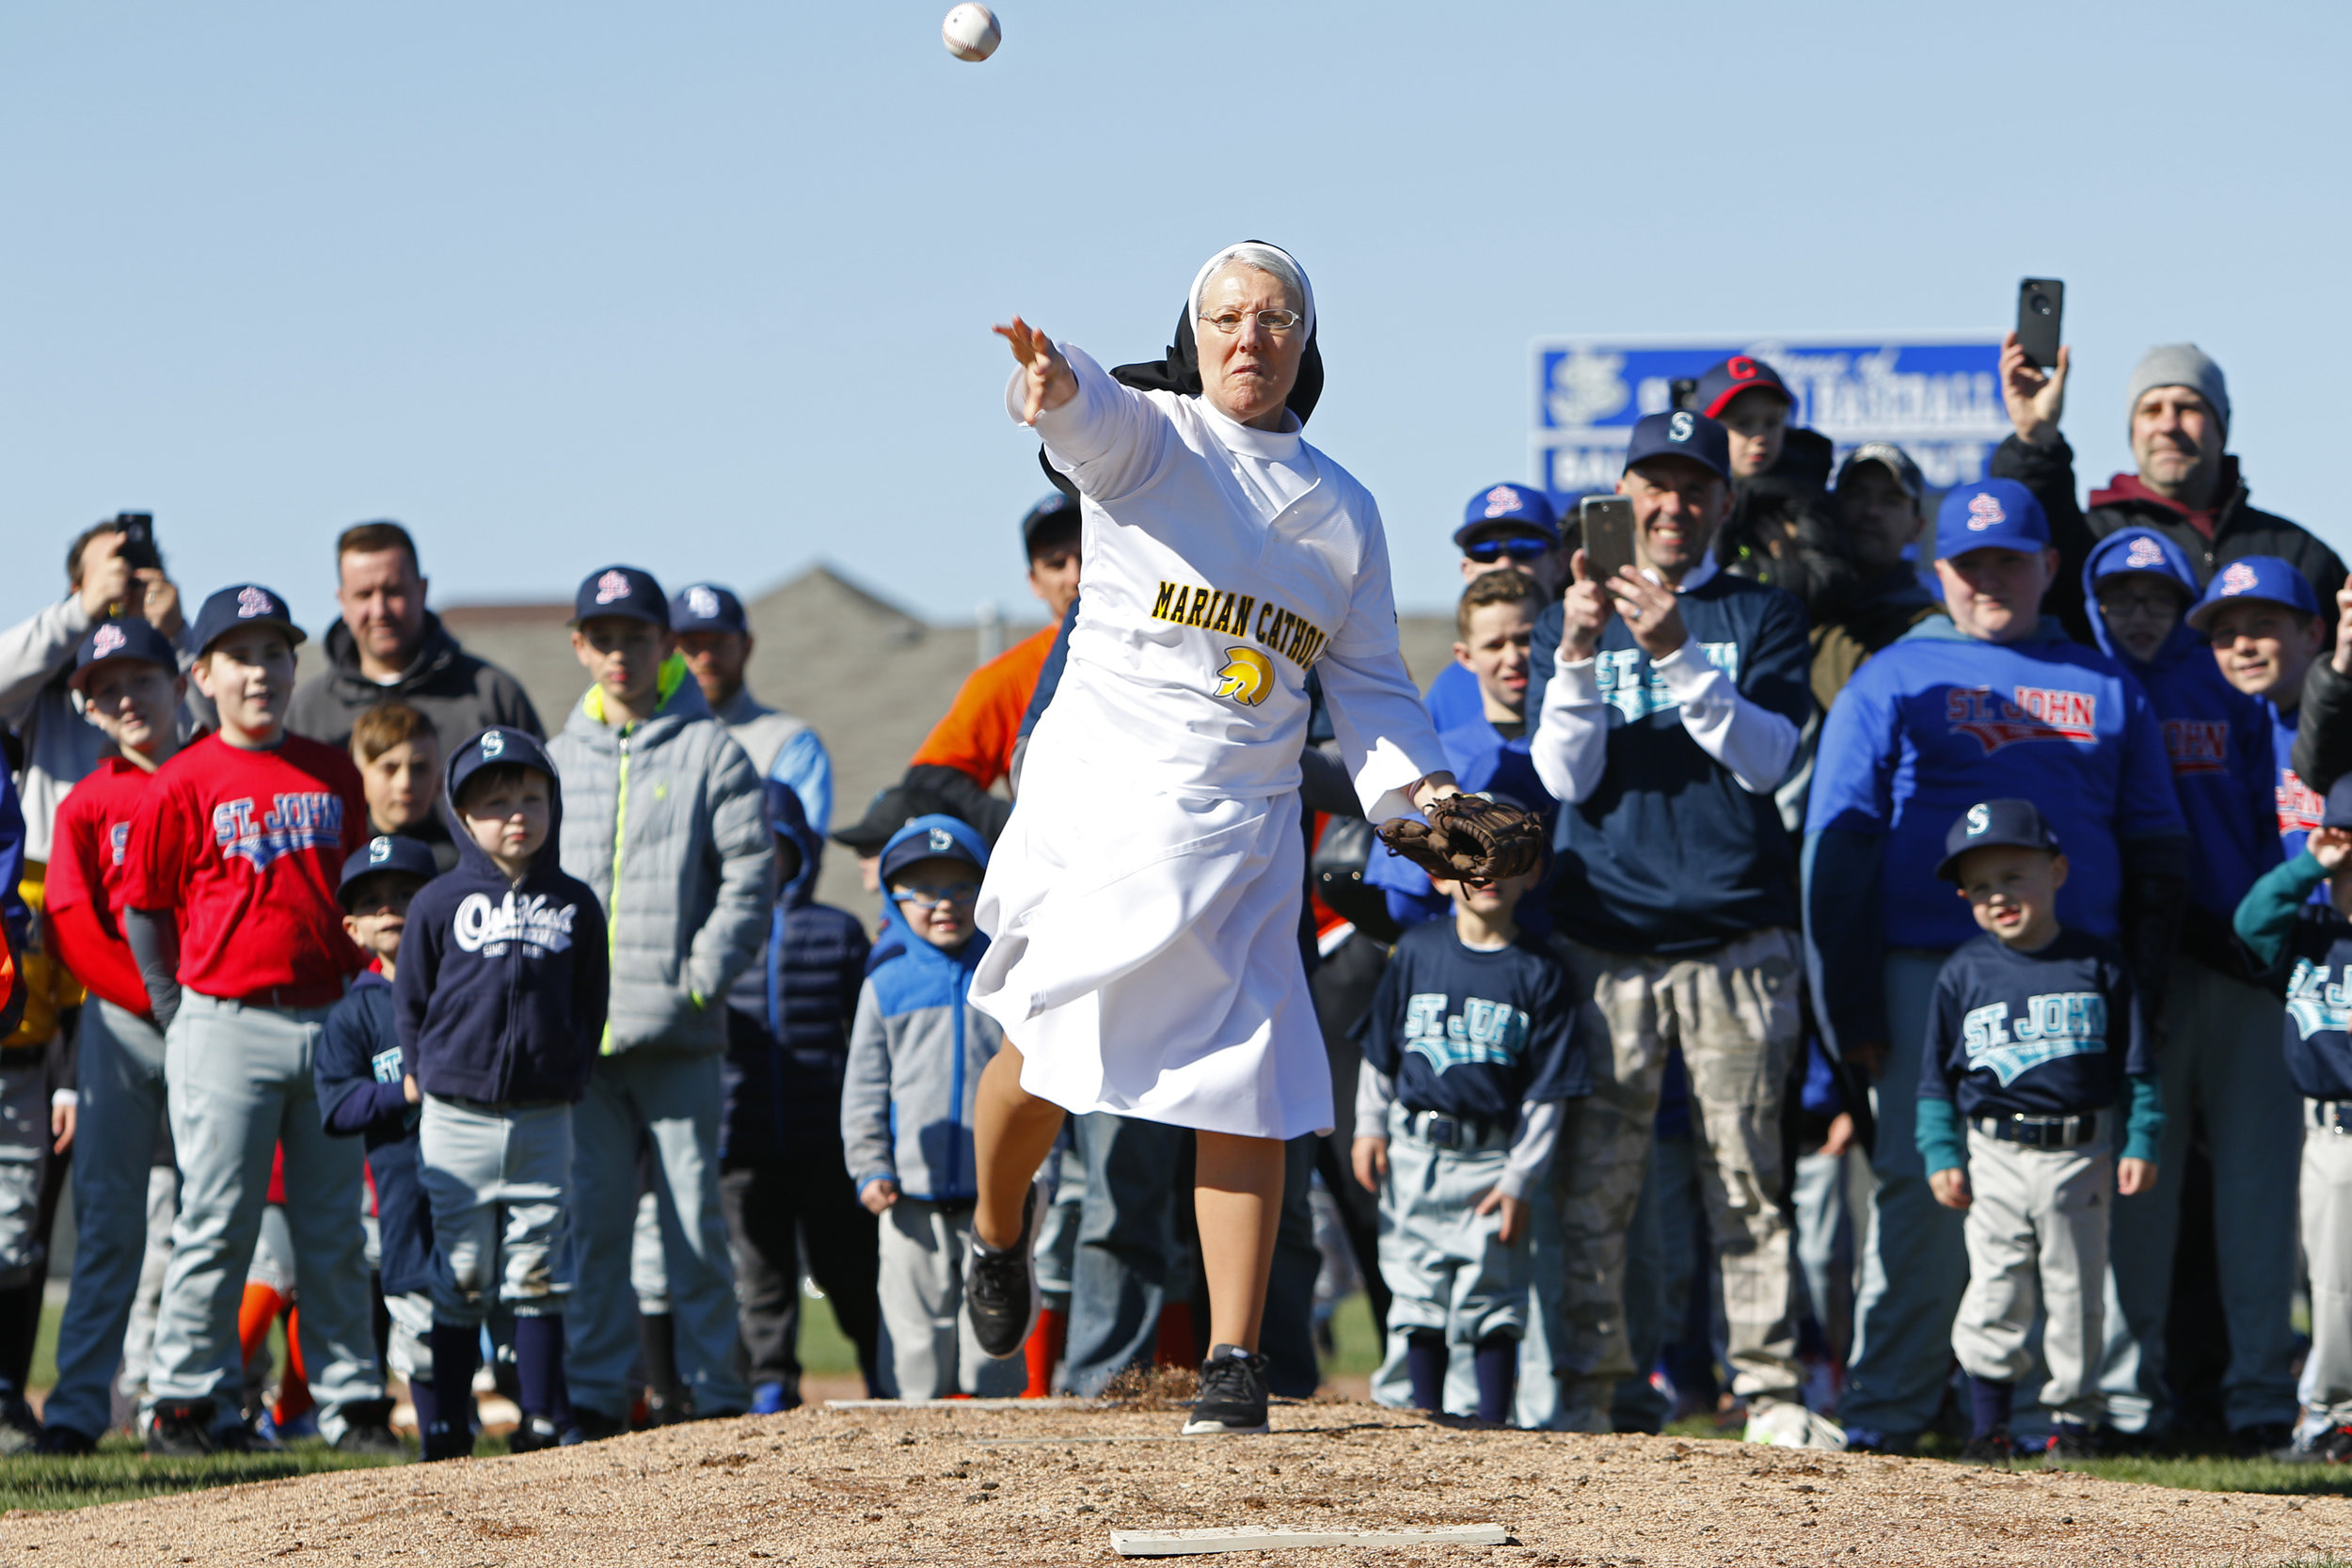 Marian Catholic's Sister Mary Jo Sobieck throws out the first pitch during opening day ceremonies at St. John Youth Baseball's fields in Dyer. Sobieck went viral last year after throwing out the first pitch at a Chicago White Sox game.